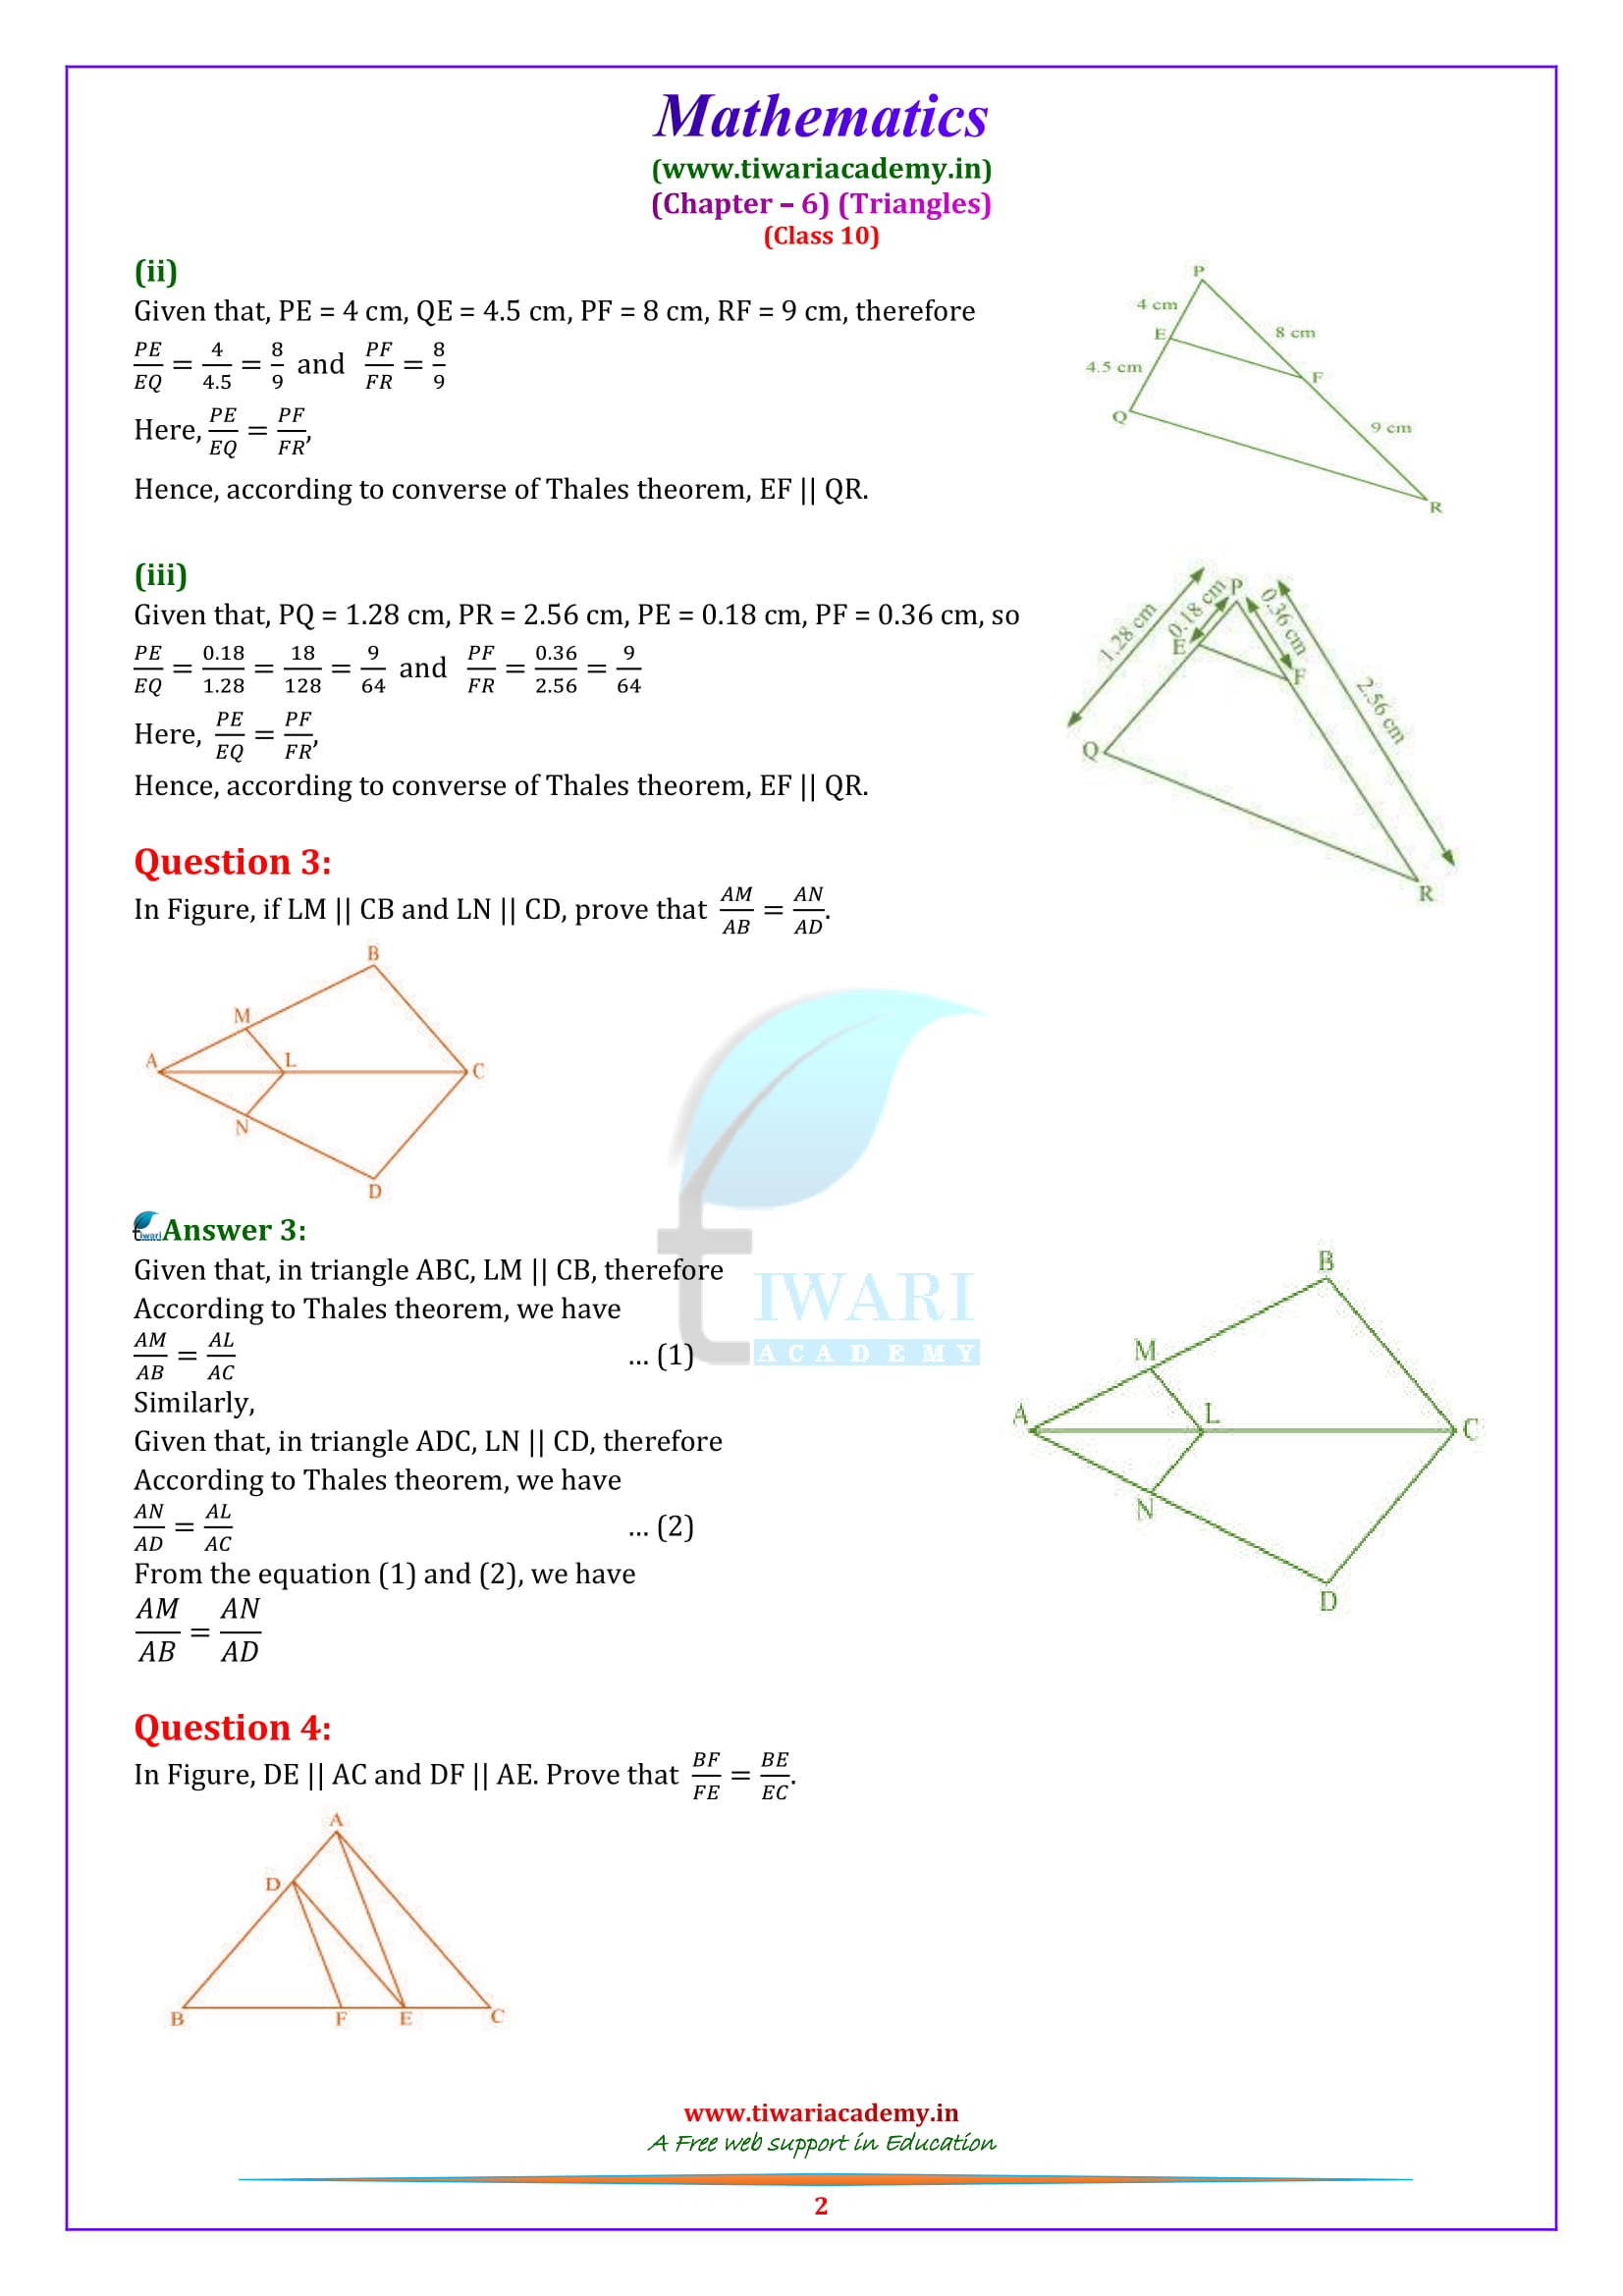 10 Maths Exercise 6.2 Solutions updated for 2018-19.